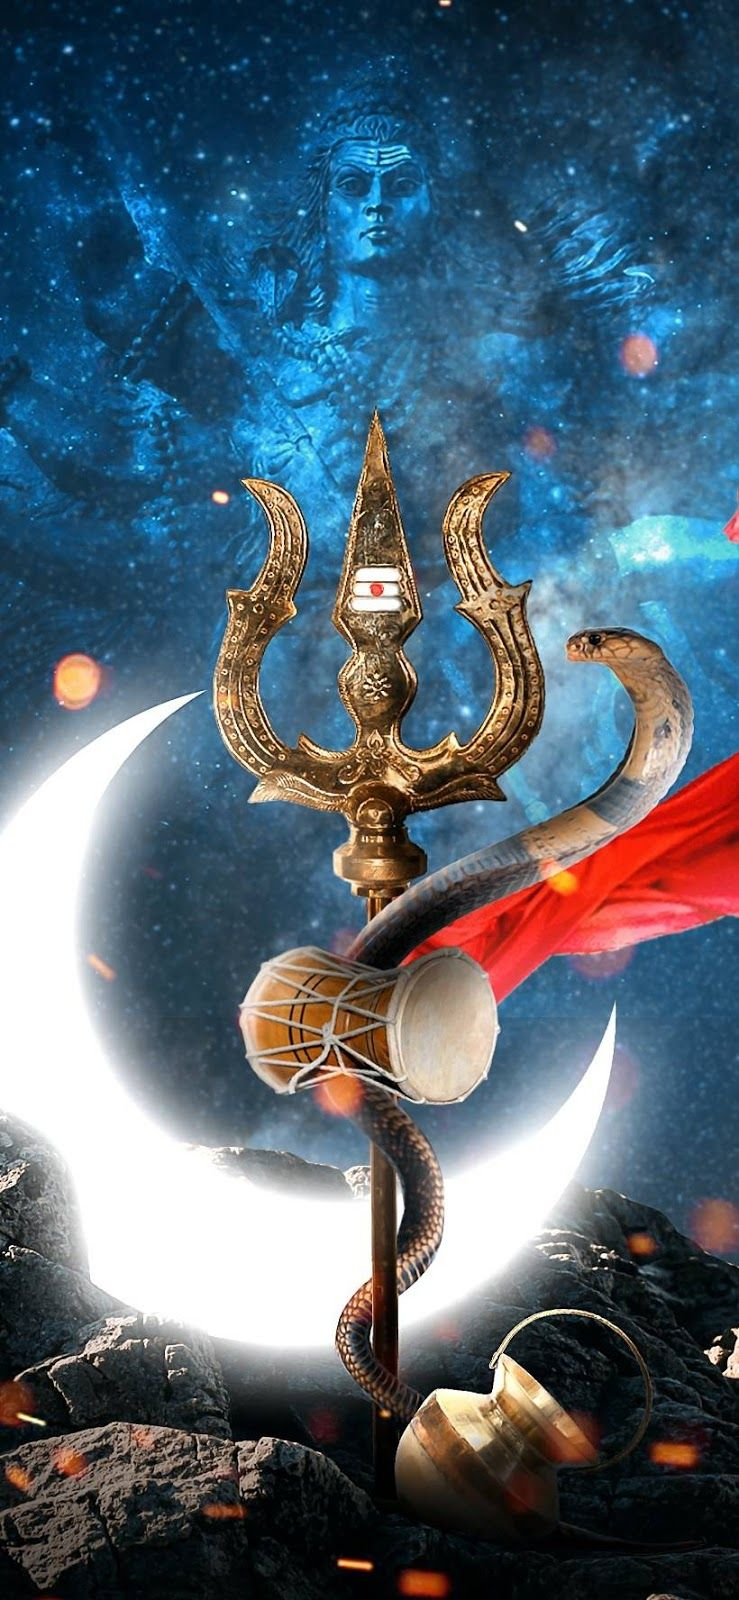 Most Unique And Ultra Hd Shiva Wallpapers Hindu God Mahadev Full Hd Wallpaper For Mobile Scree In 2020 Lord Shiva Hd Wallpaper Shiva Wallpaper Lord Hanuman Wallpapers